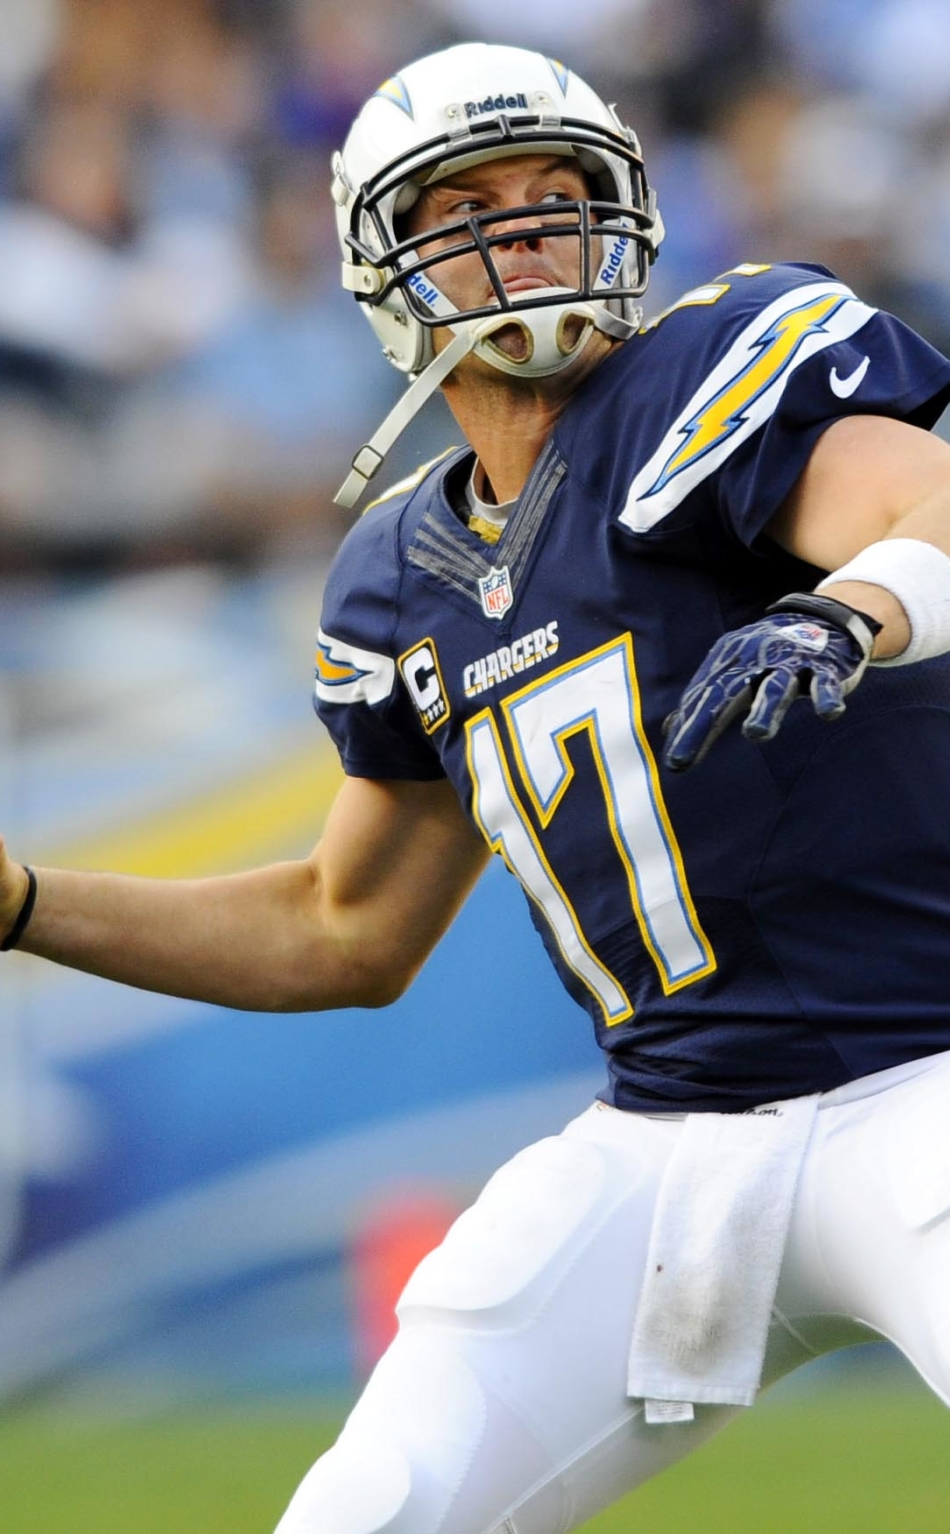 950x1534 Philip Rivers San Diego Chargers American Football